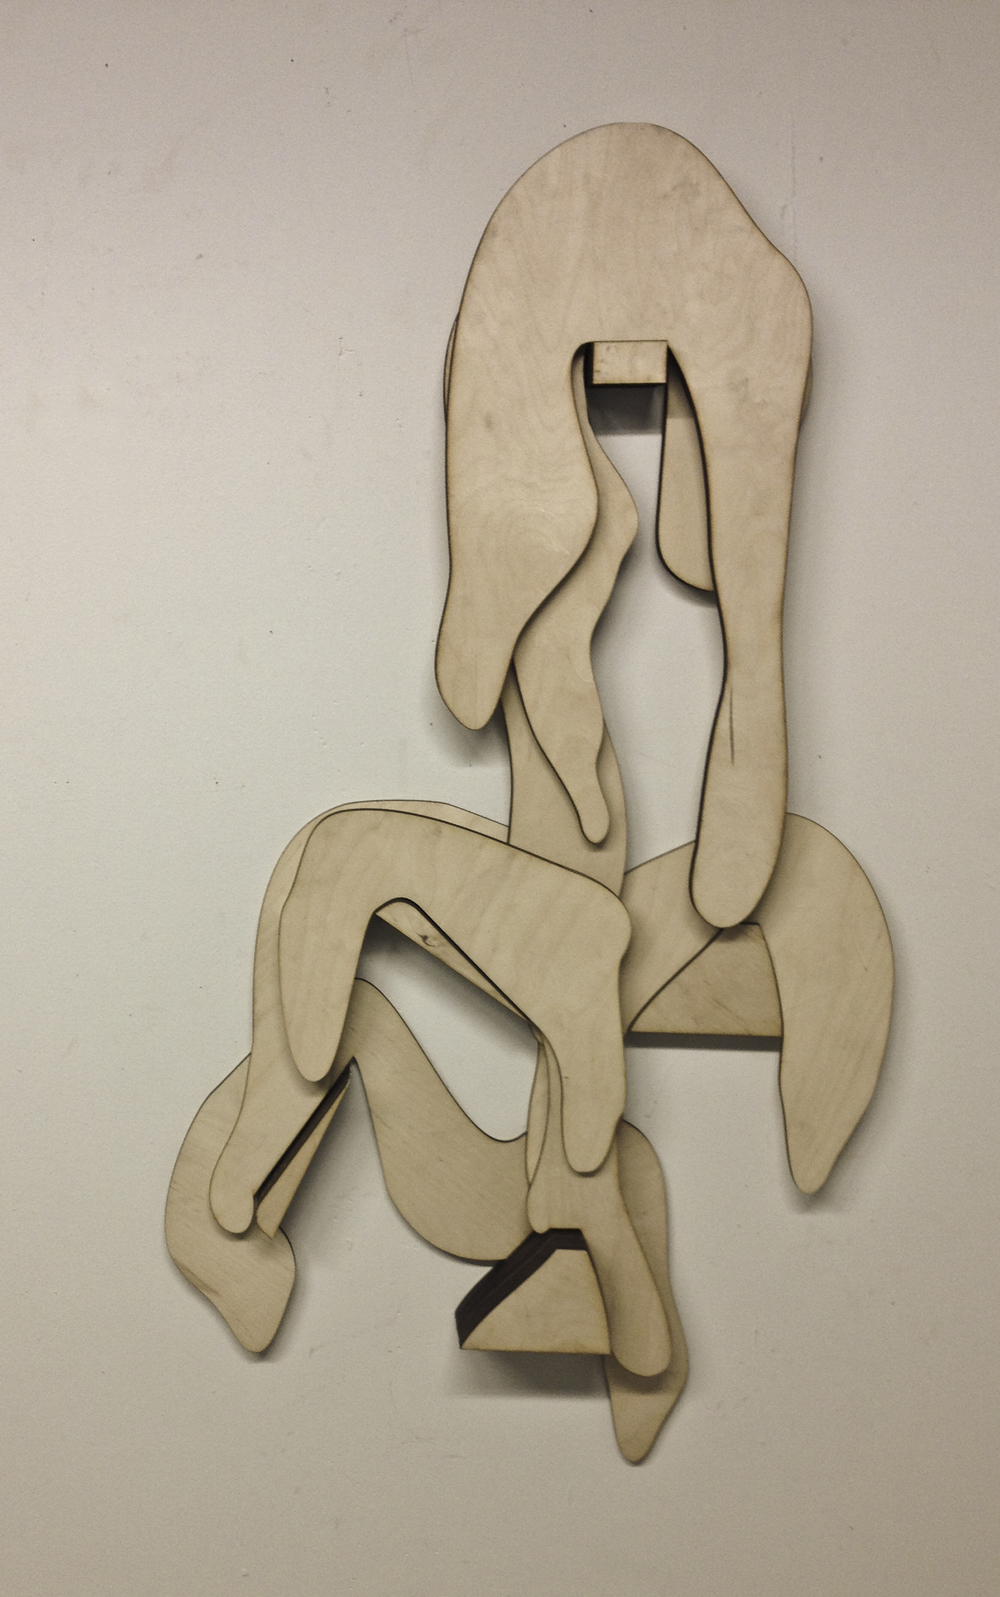 Plywood drips